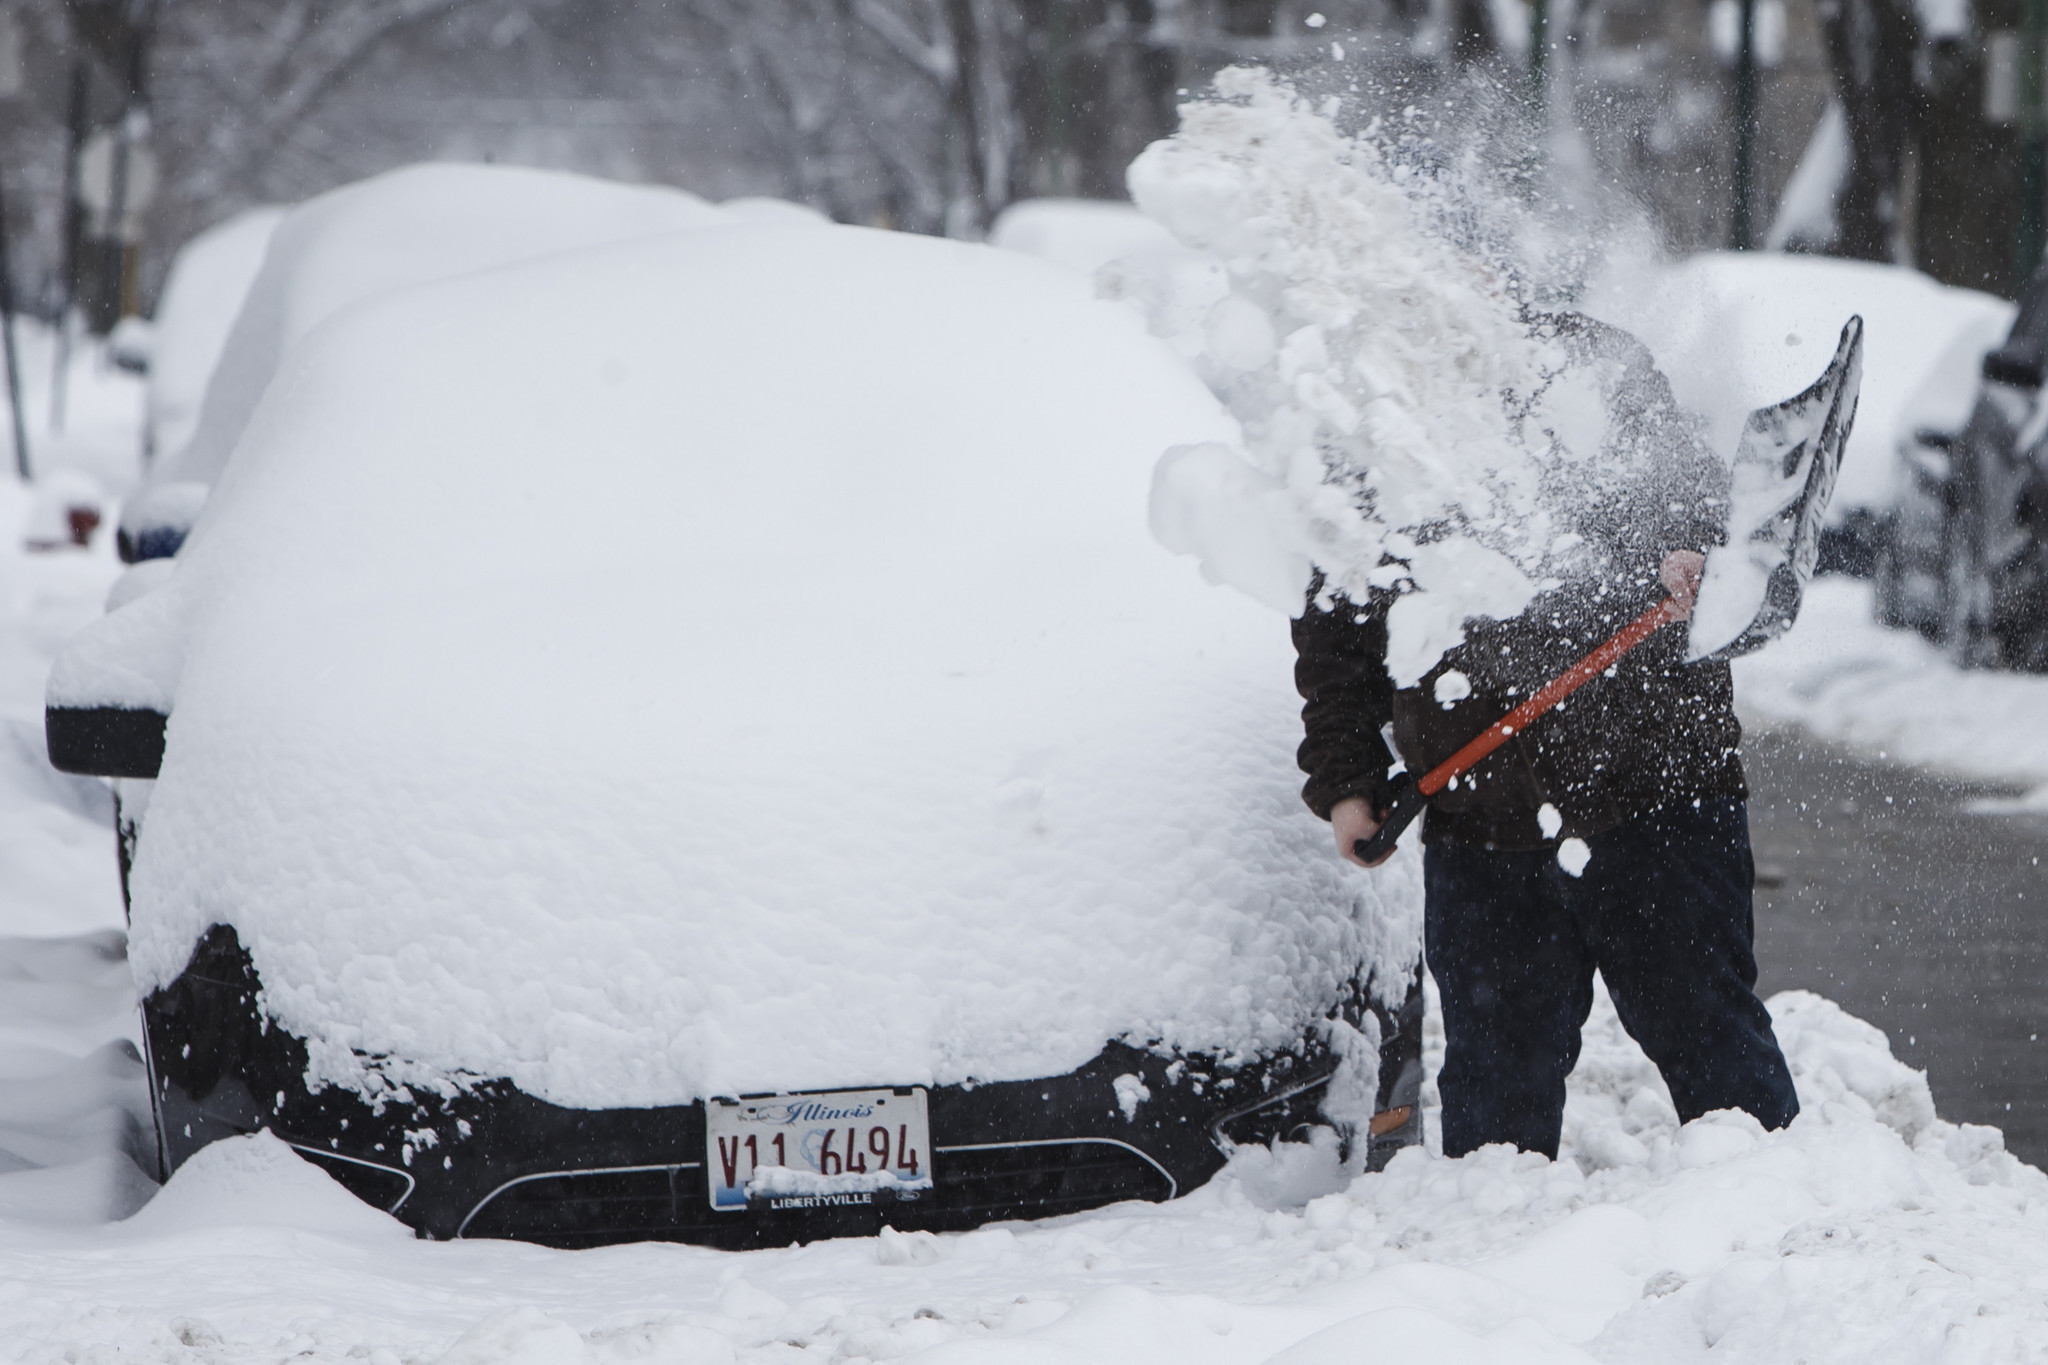 How To Get Your Car Unstuck From Snow Orlando Sentinel